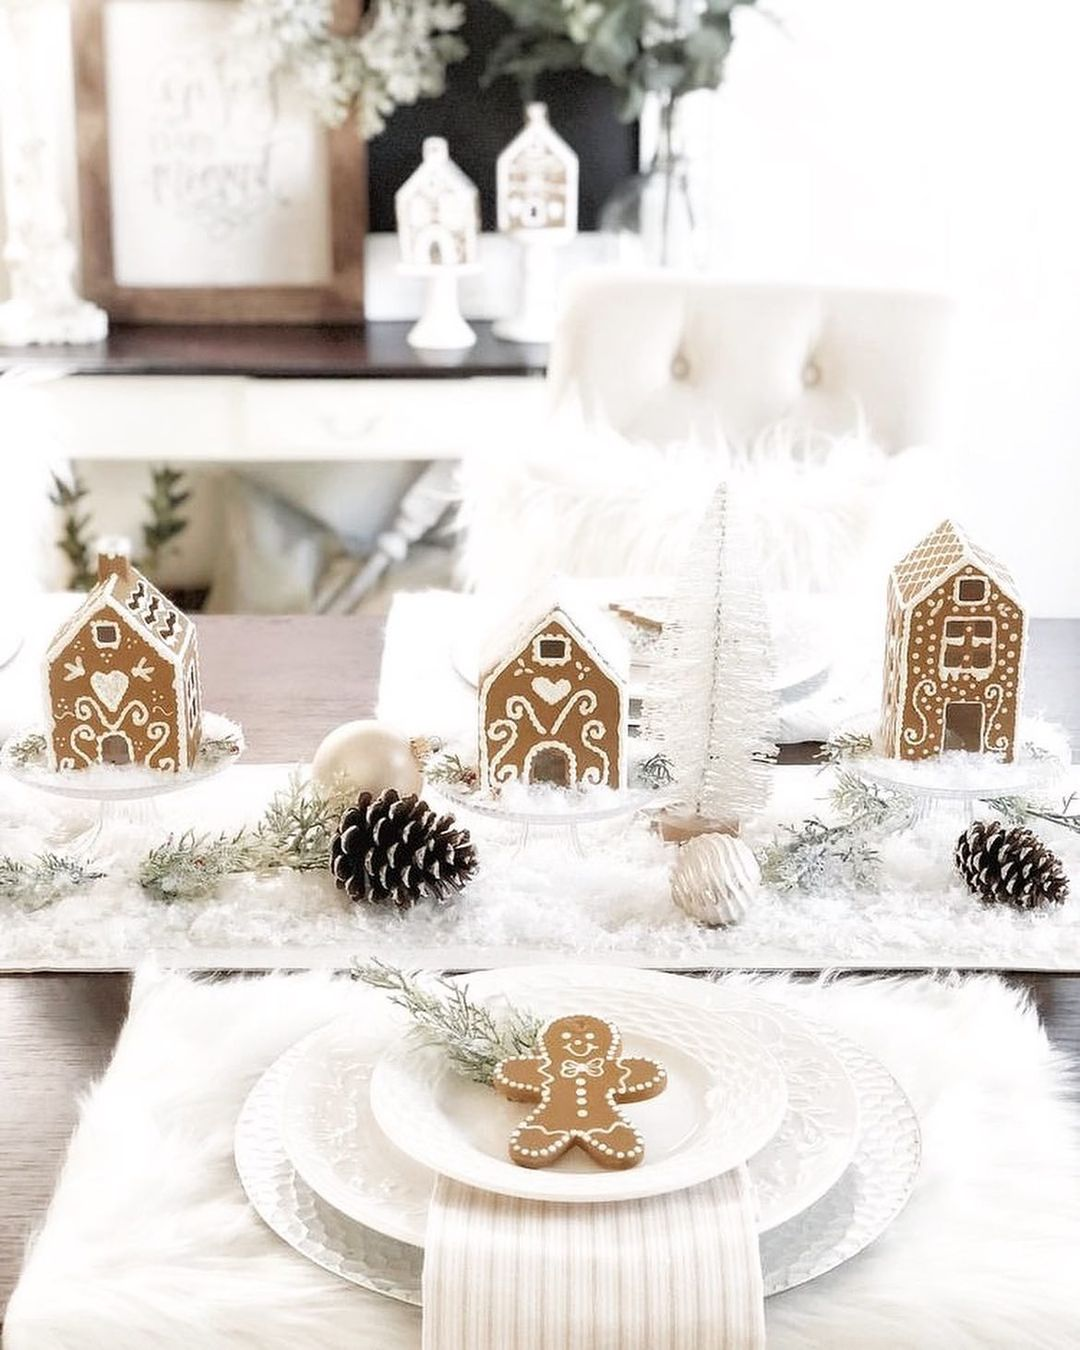 56 WONDERFUL AND CAREFUL CHRISTMAS TABLES Pictures 35